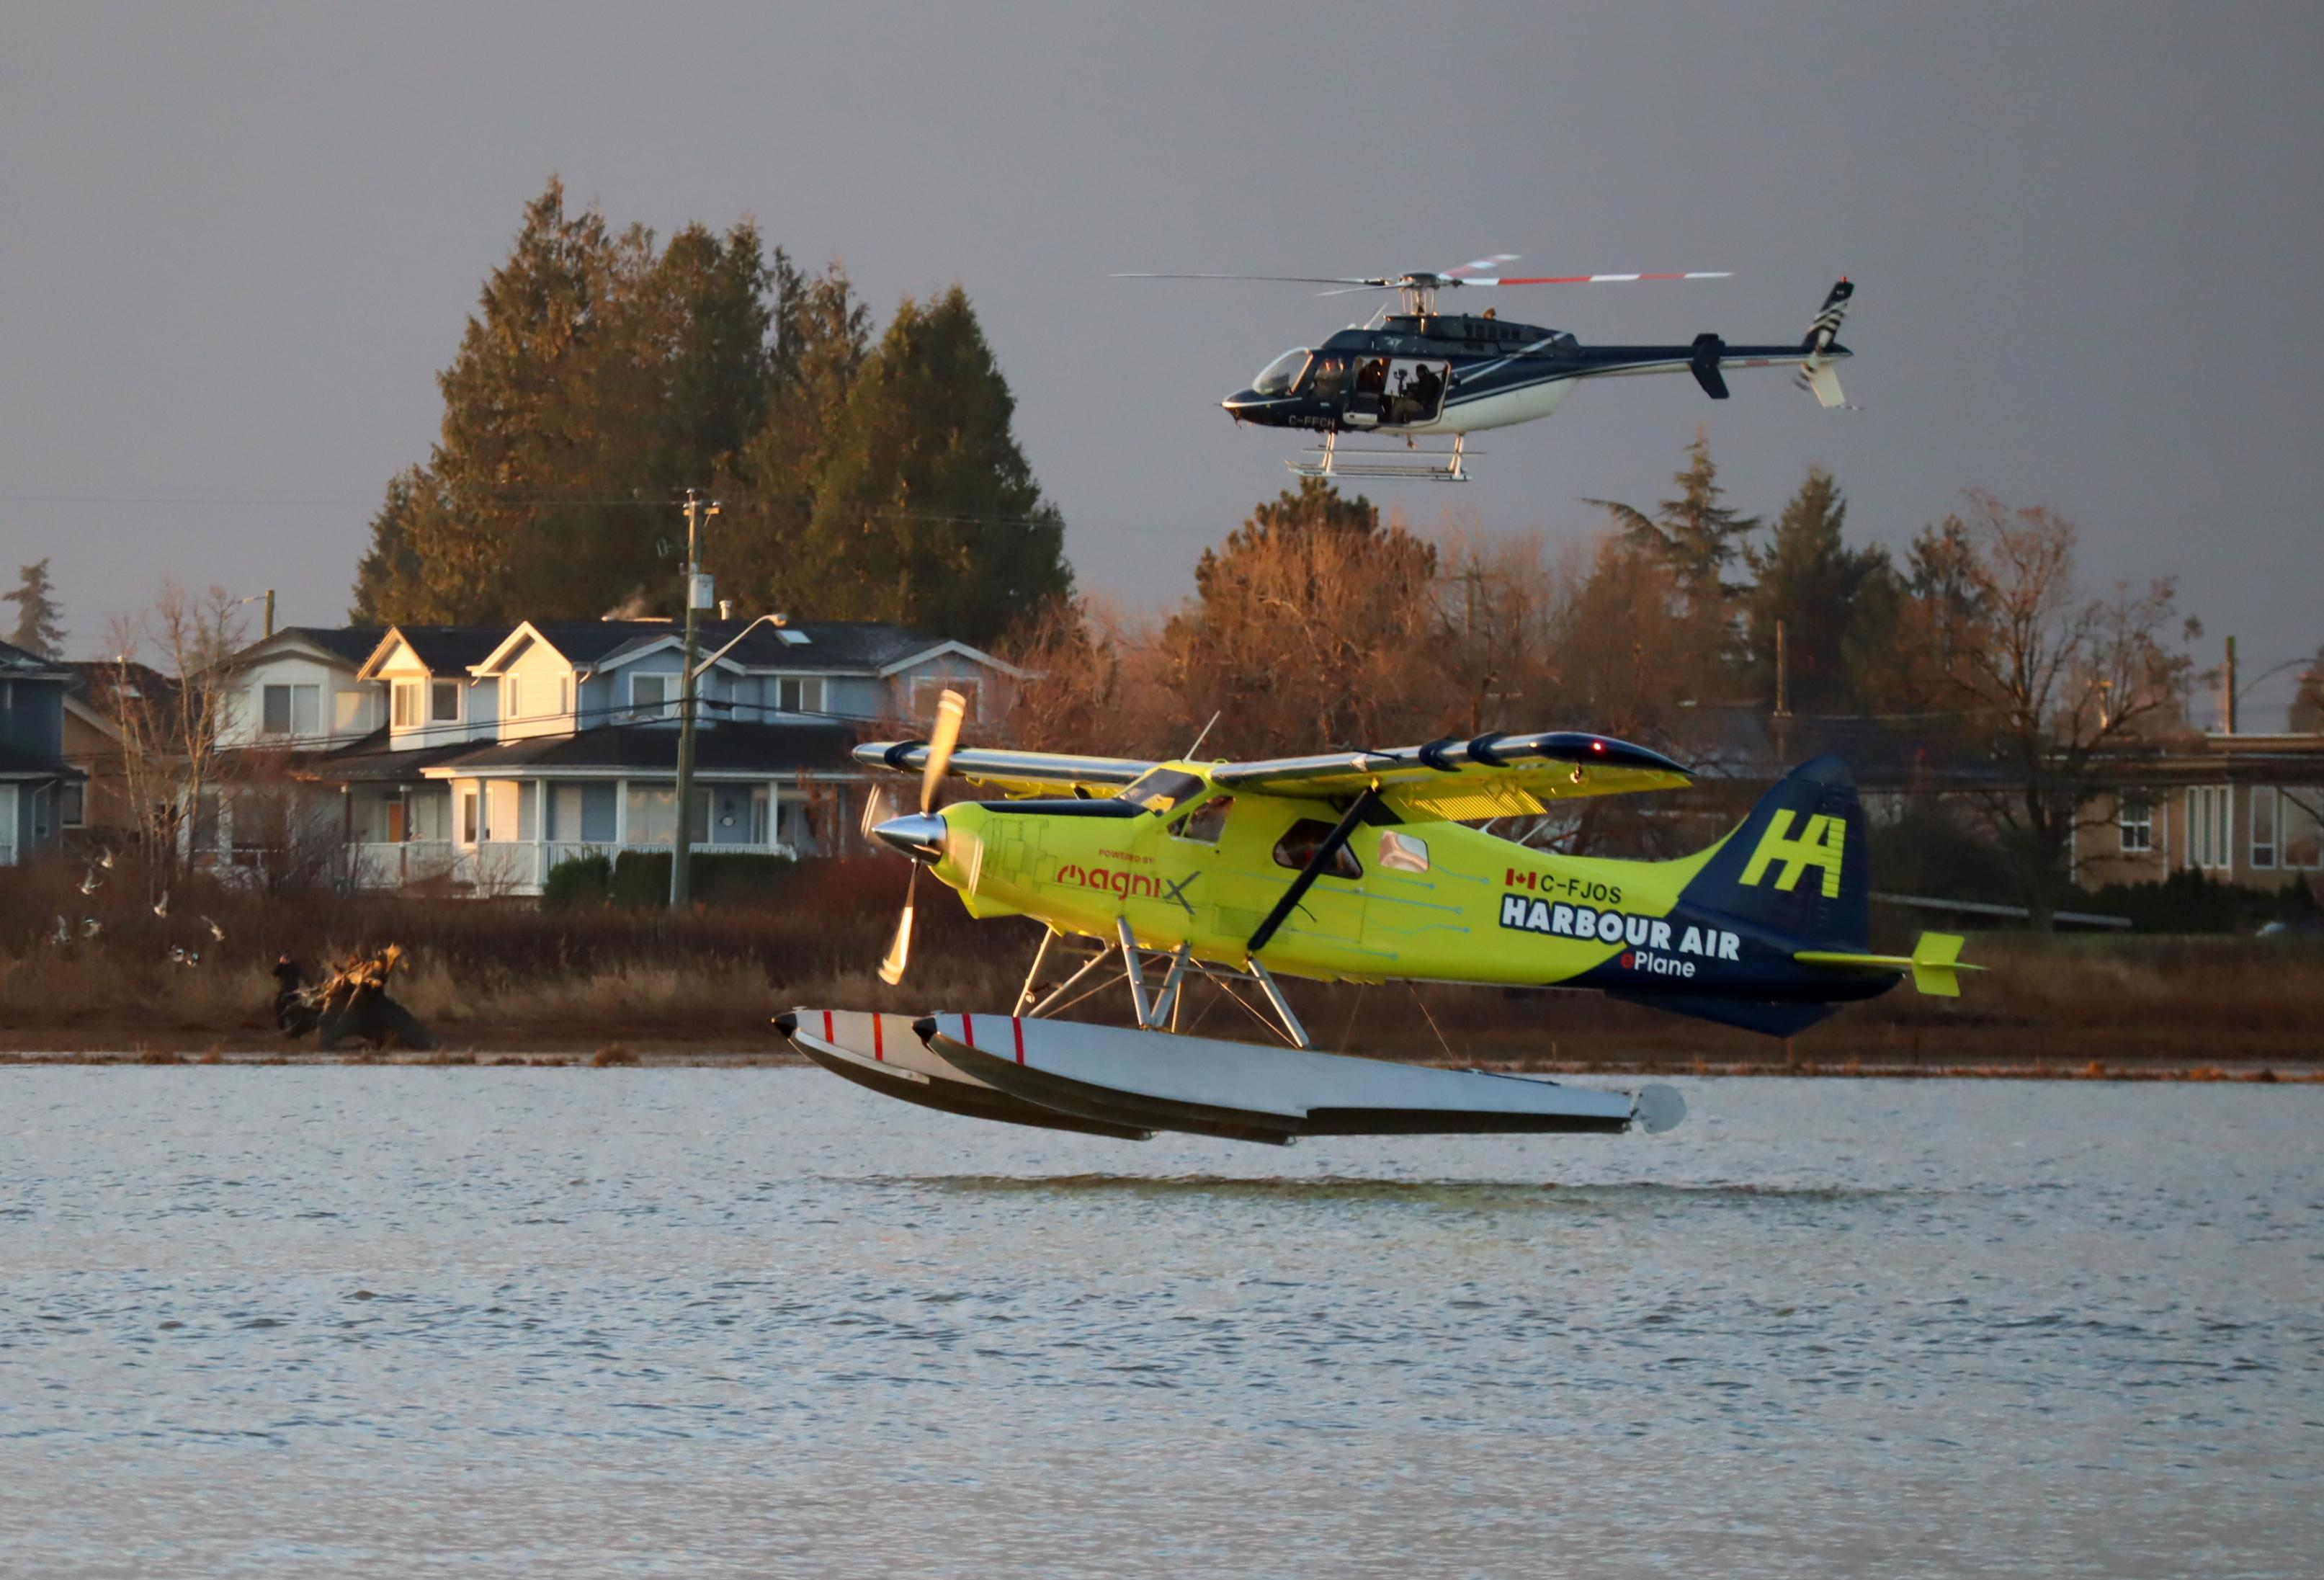 It Flew All Electric Seaplane Completes Milestone First Flight Near Vancouver Bc Opb